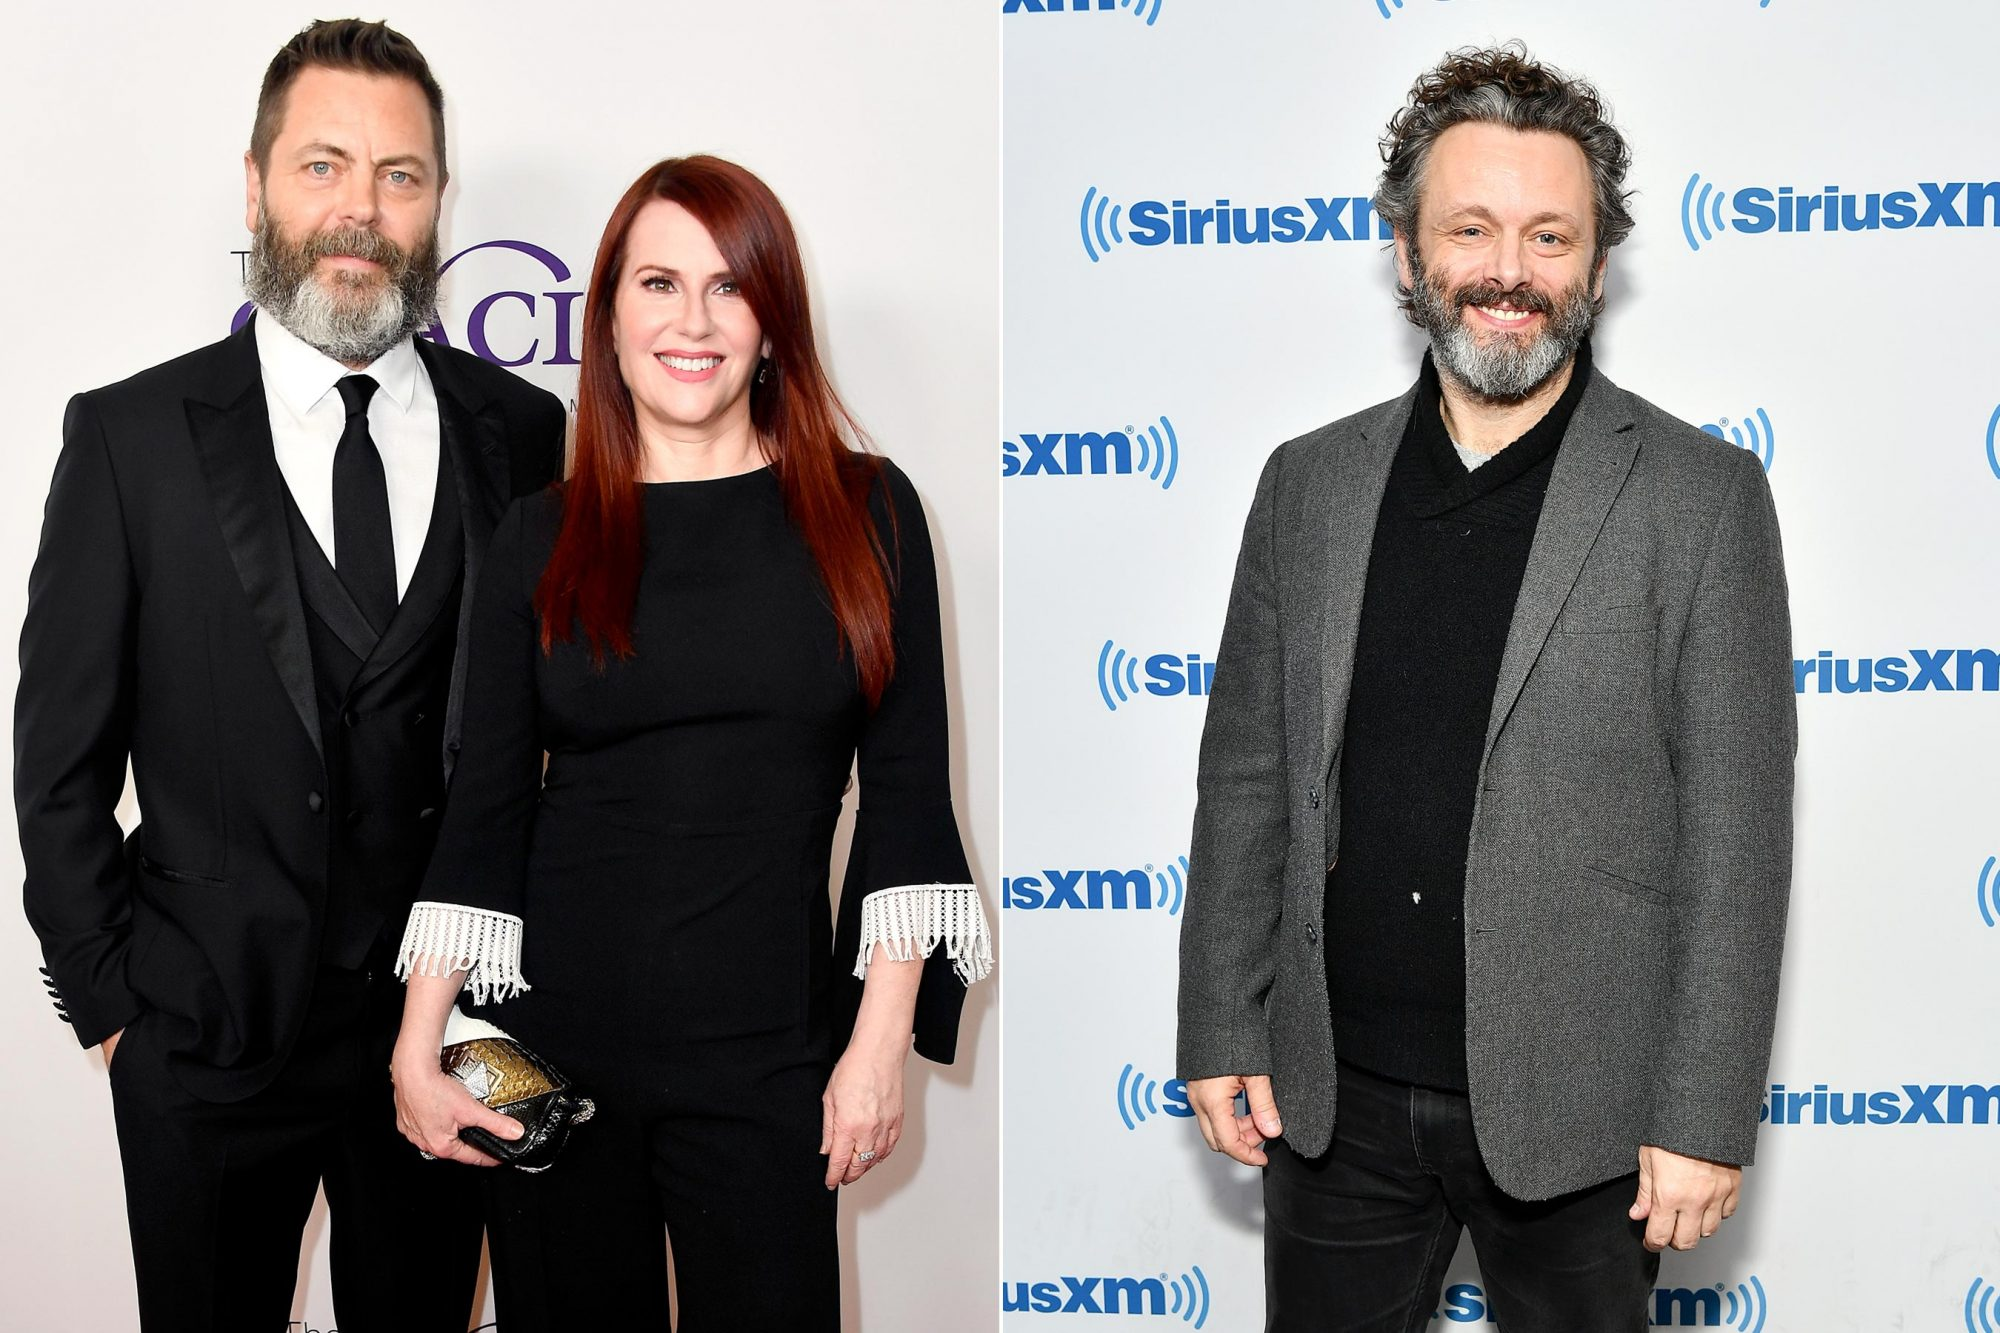 BEVERLY HILLS, CA - MAY 22: Nick Offerman (L) and Megan Mullally attend the 43rd Annual Gracie Awards at the Beverly Wilshire Four Seasons Hotel on May 22, 2018 in Beverly Hills, California. (Photo by Frazer Harrison/Getty Images) NEW YORK, NY - OCTOBER 09: (EXCLUSIVE COVERAGE) Actor Michael Sheen visits SiriusXM Studios on October 9, 2018 in New York City. (Photo by Slaven Vlasic/Getty Images)